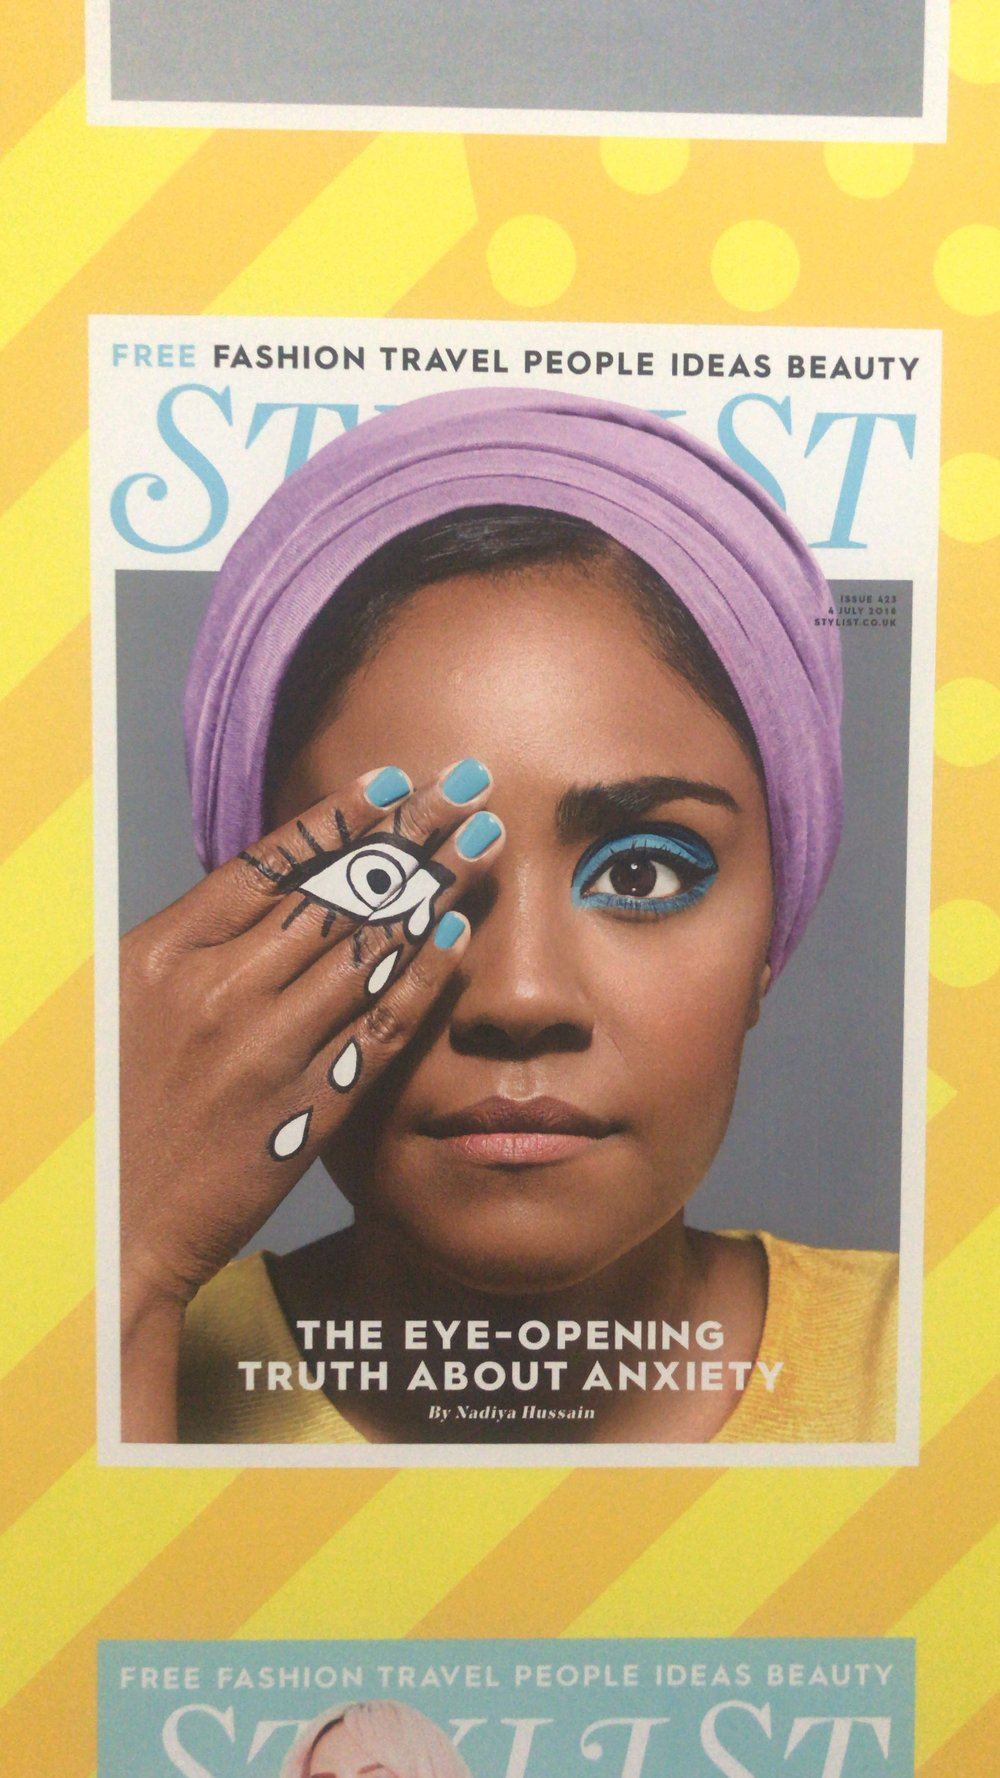 The entrance to the Stylist Live 2018 event featured a gallery wall of their magazine covers. The July 2018 edition featuring Nadiya Hussain was my ultimate fave!